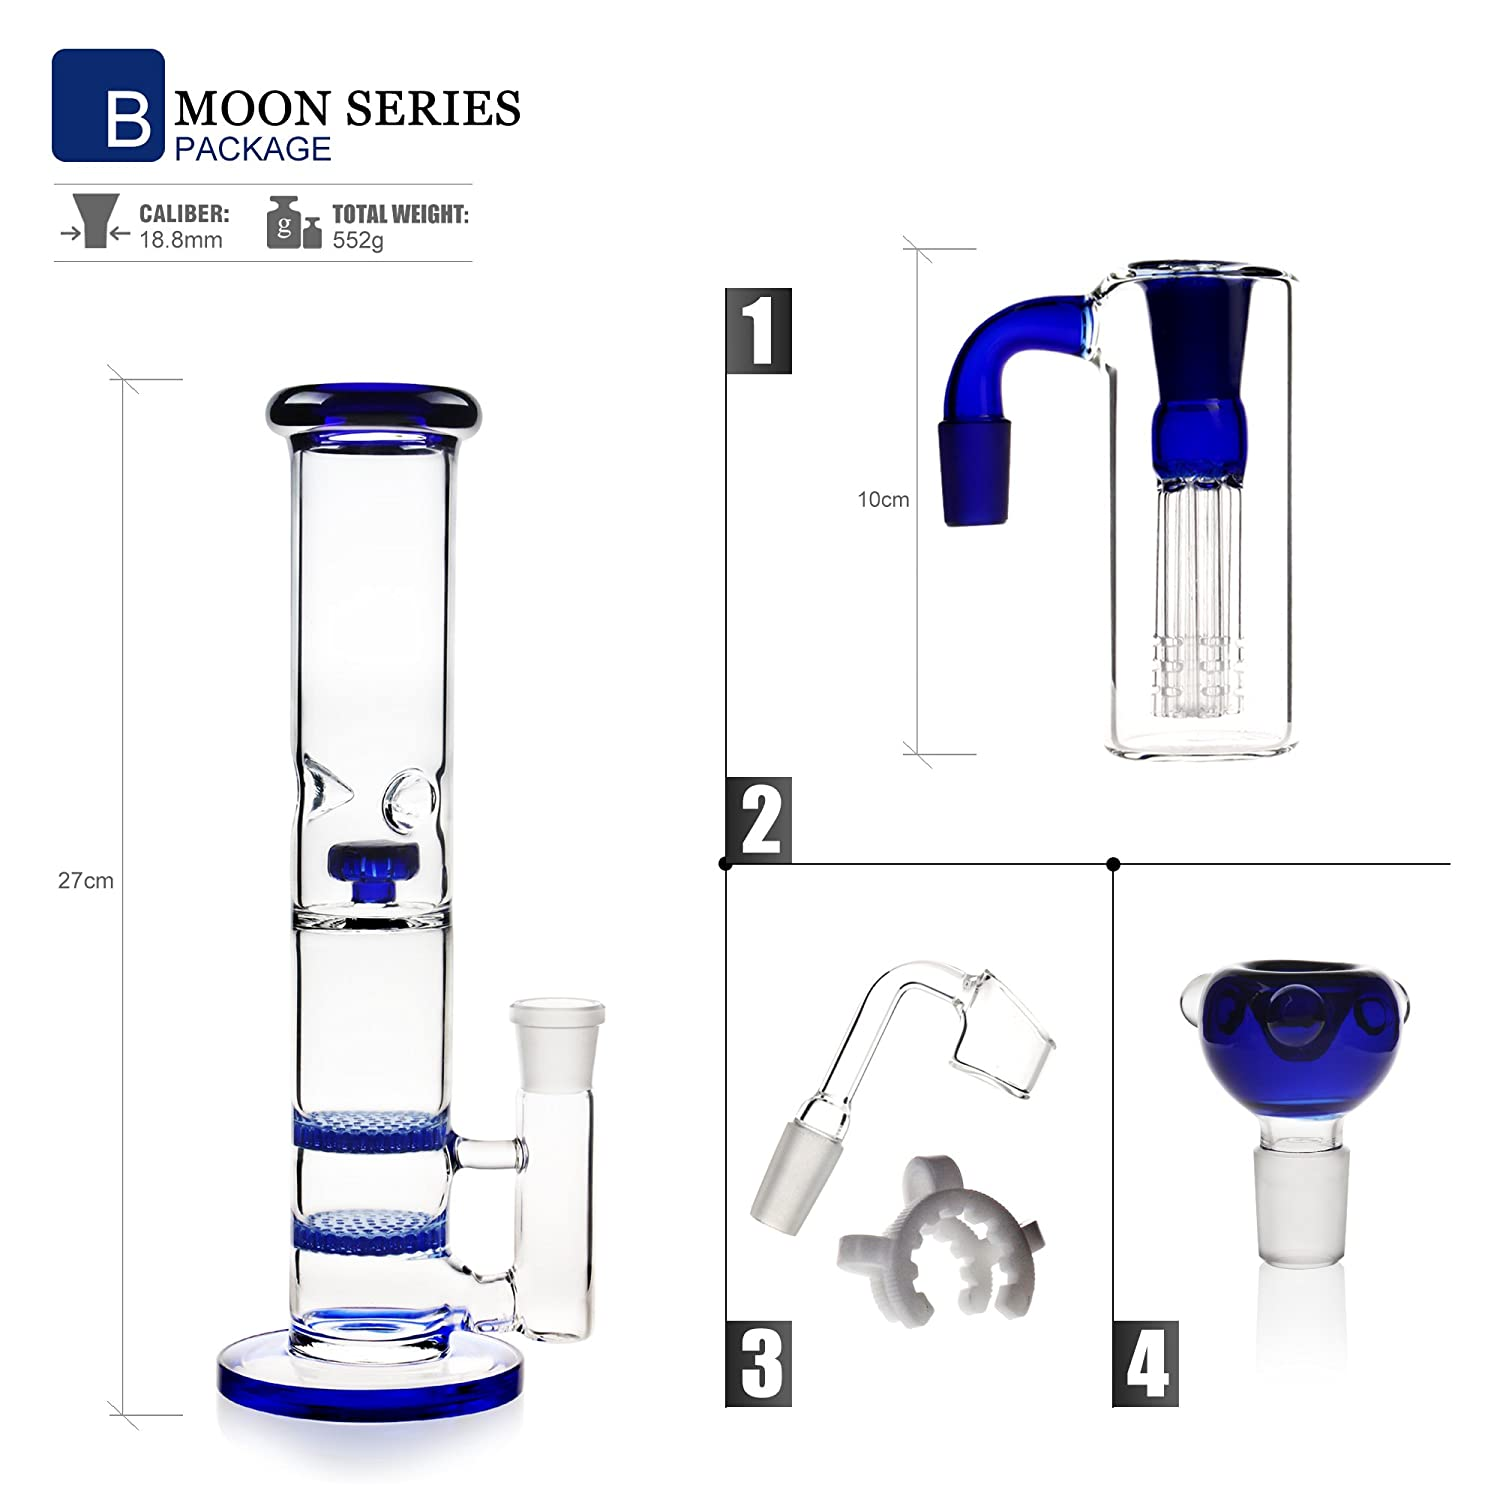 Recycler Glass Bongs hookah smoking bong 18.8mm bong bowl Height 27cm Straight Pipes Honeycomb Branch Cheap Bongs Water Oil Rigs With Accessories Blue MOON A REANICE